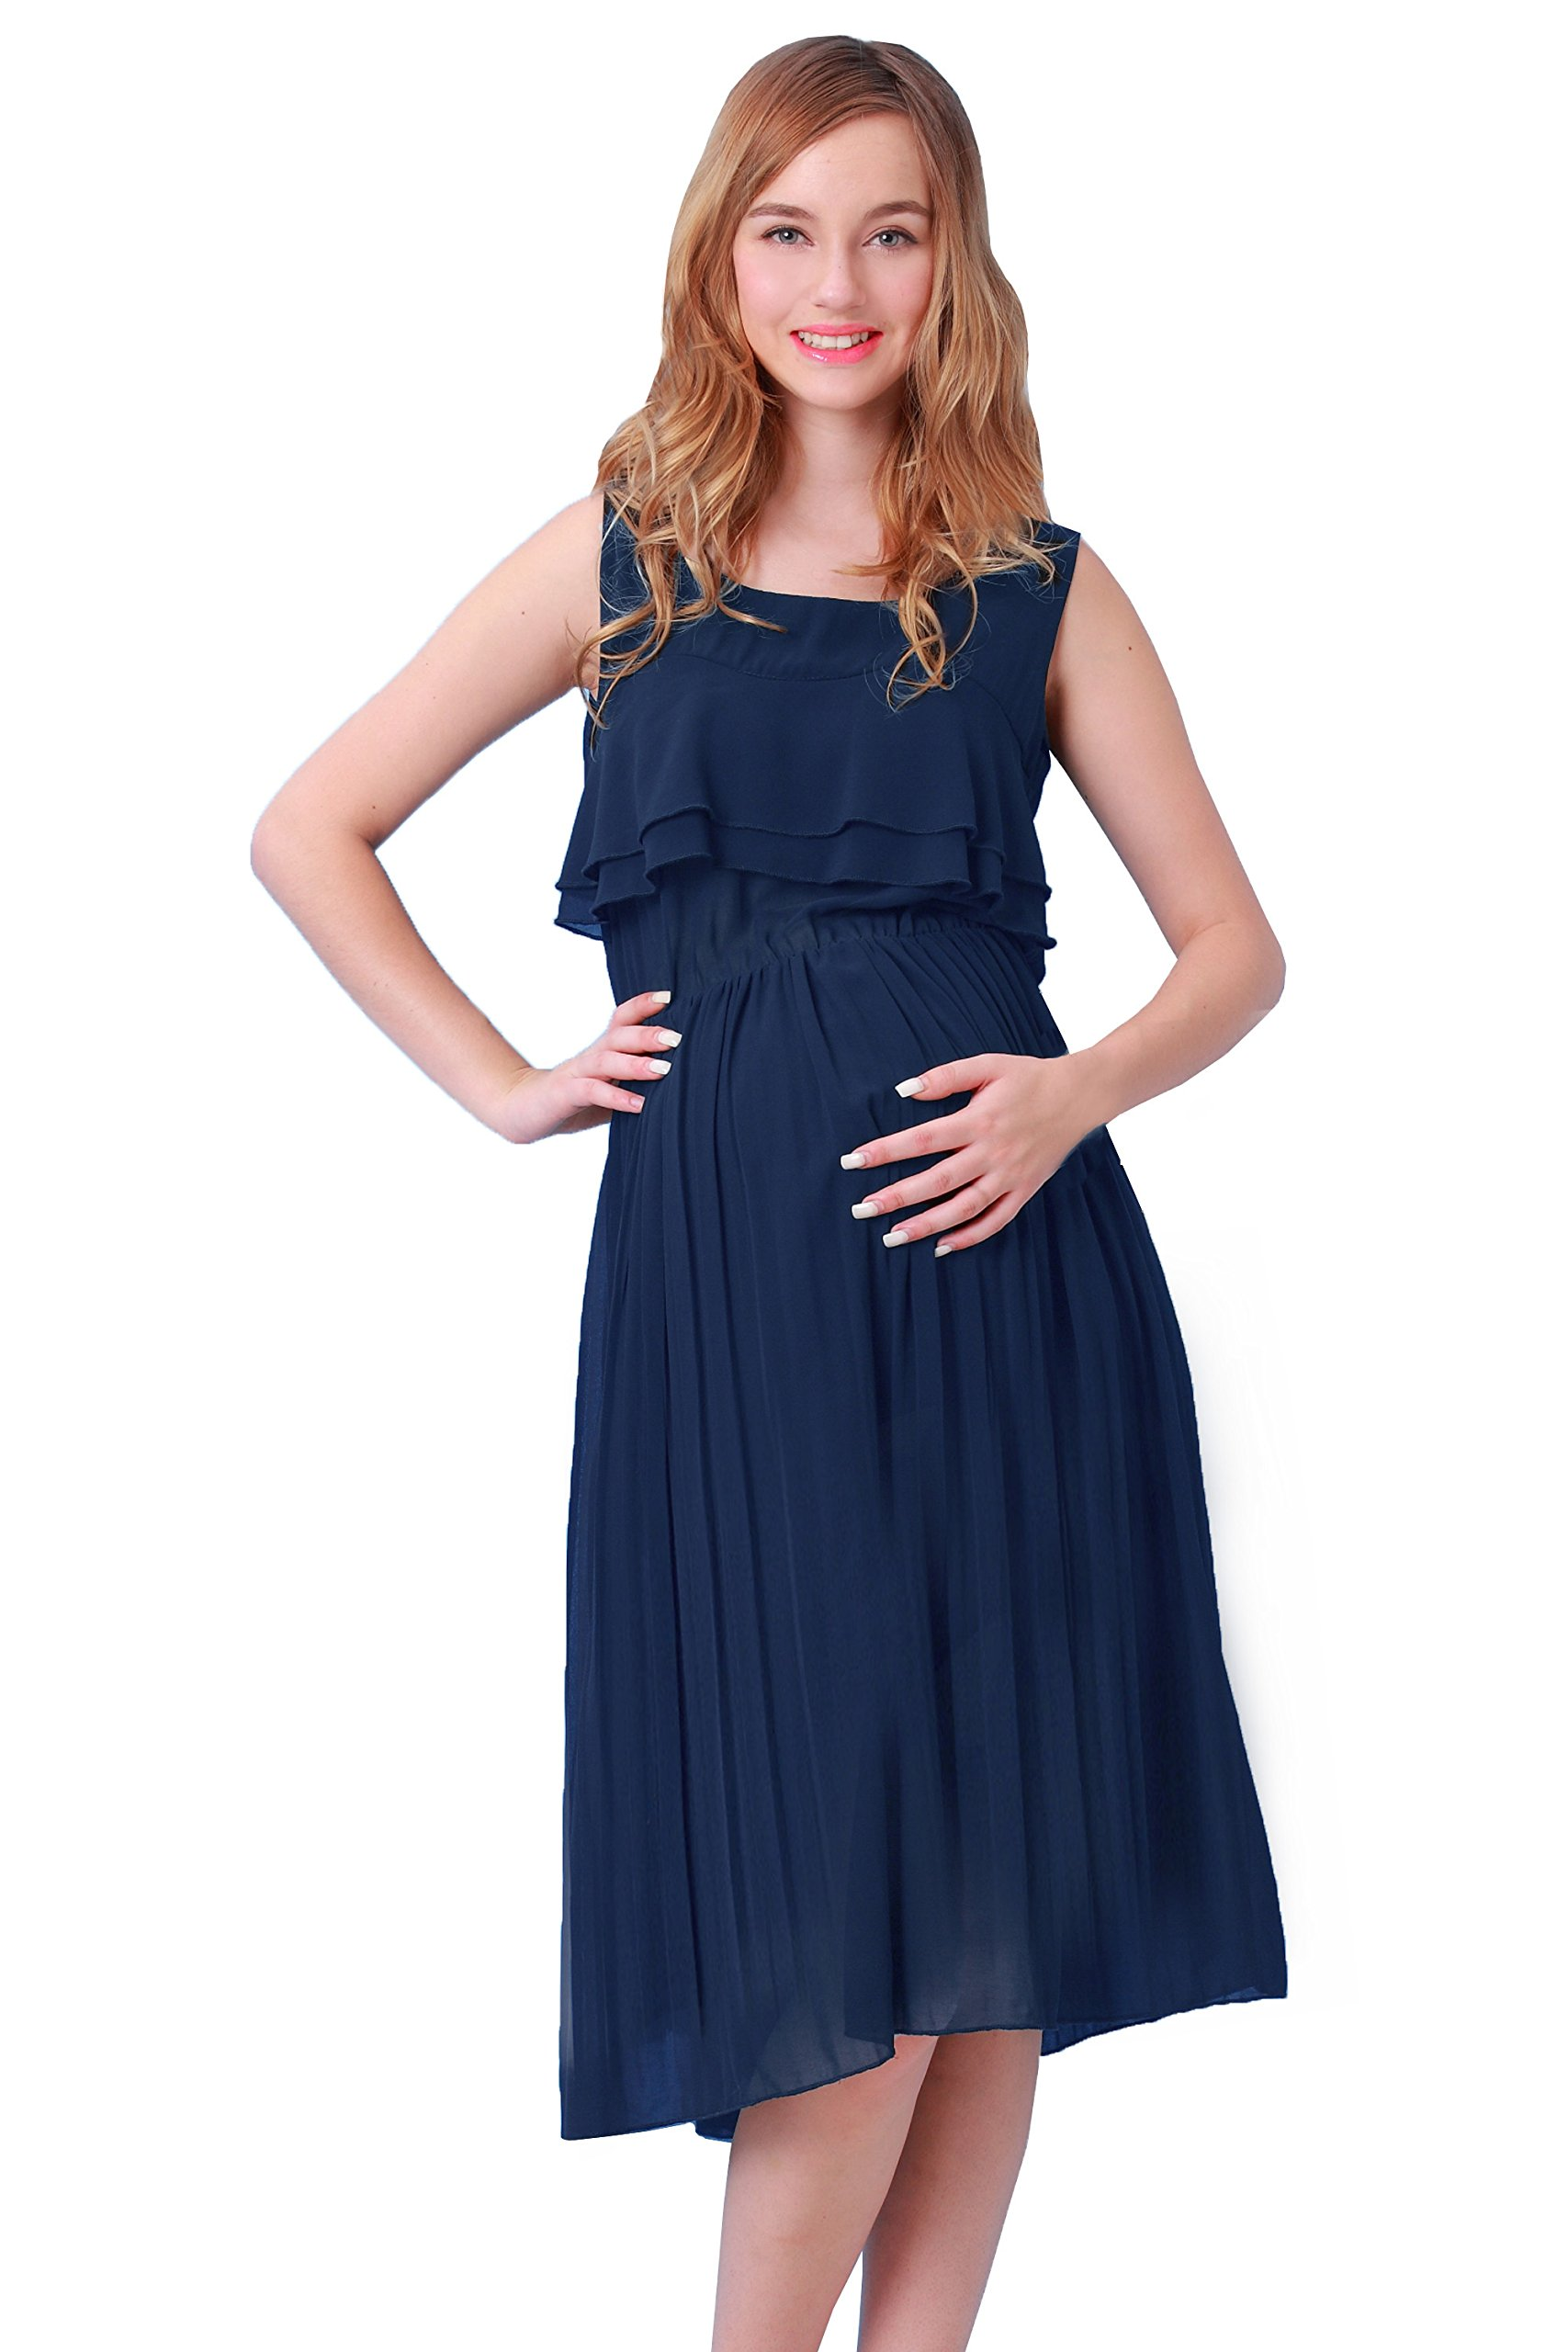 Sweet Mommy Tiered Frill Chiffon Maternity and Nursing Long Dress Navy, M